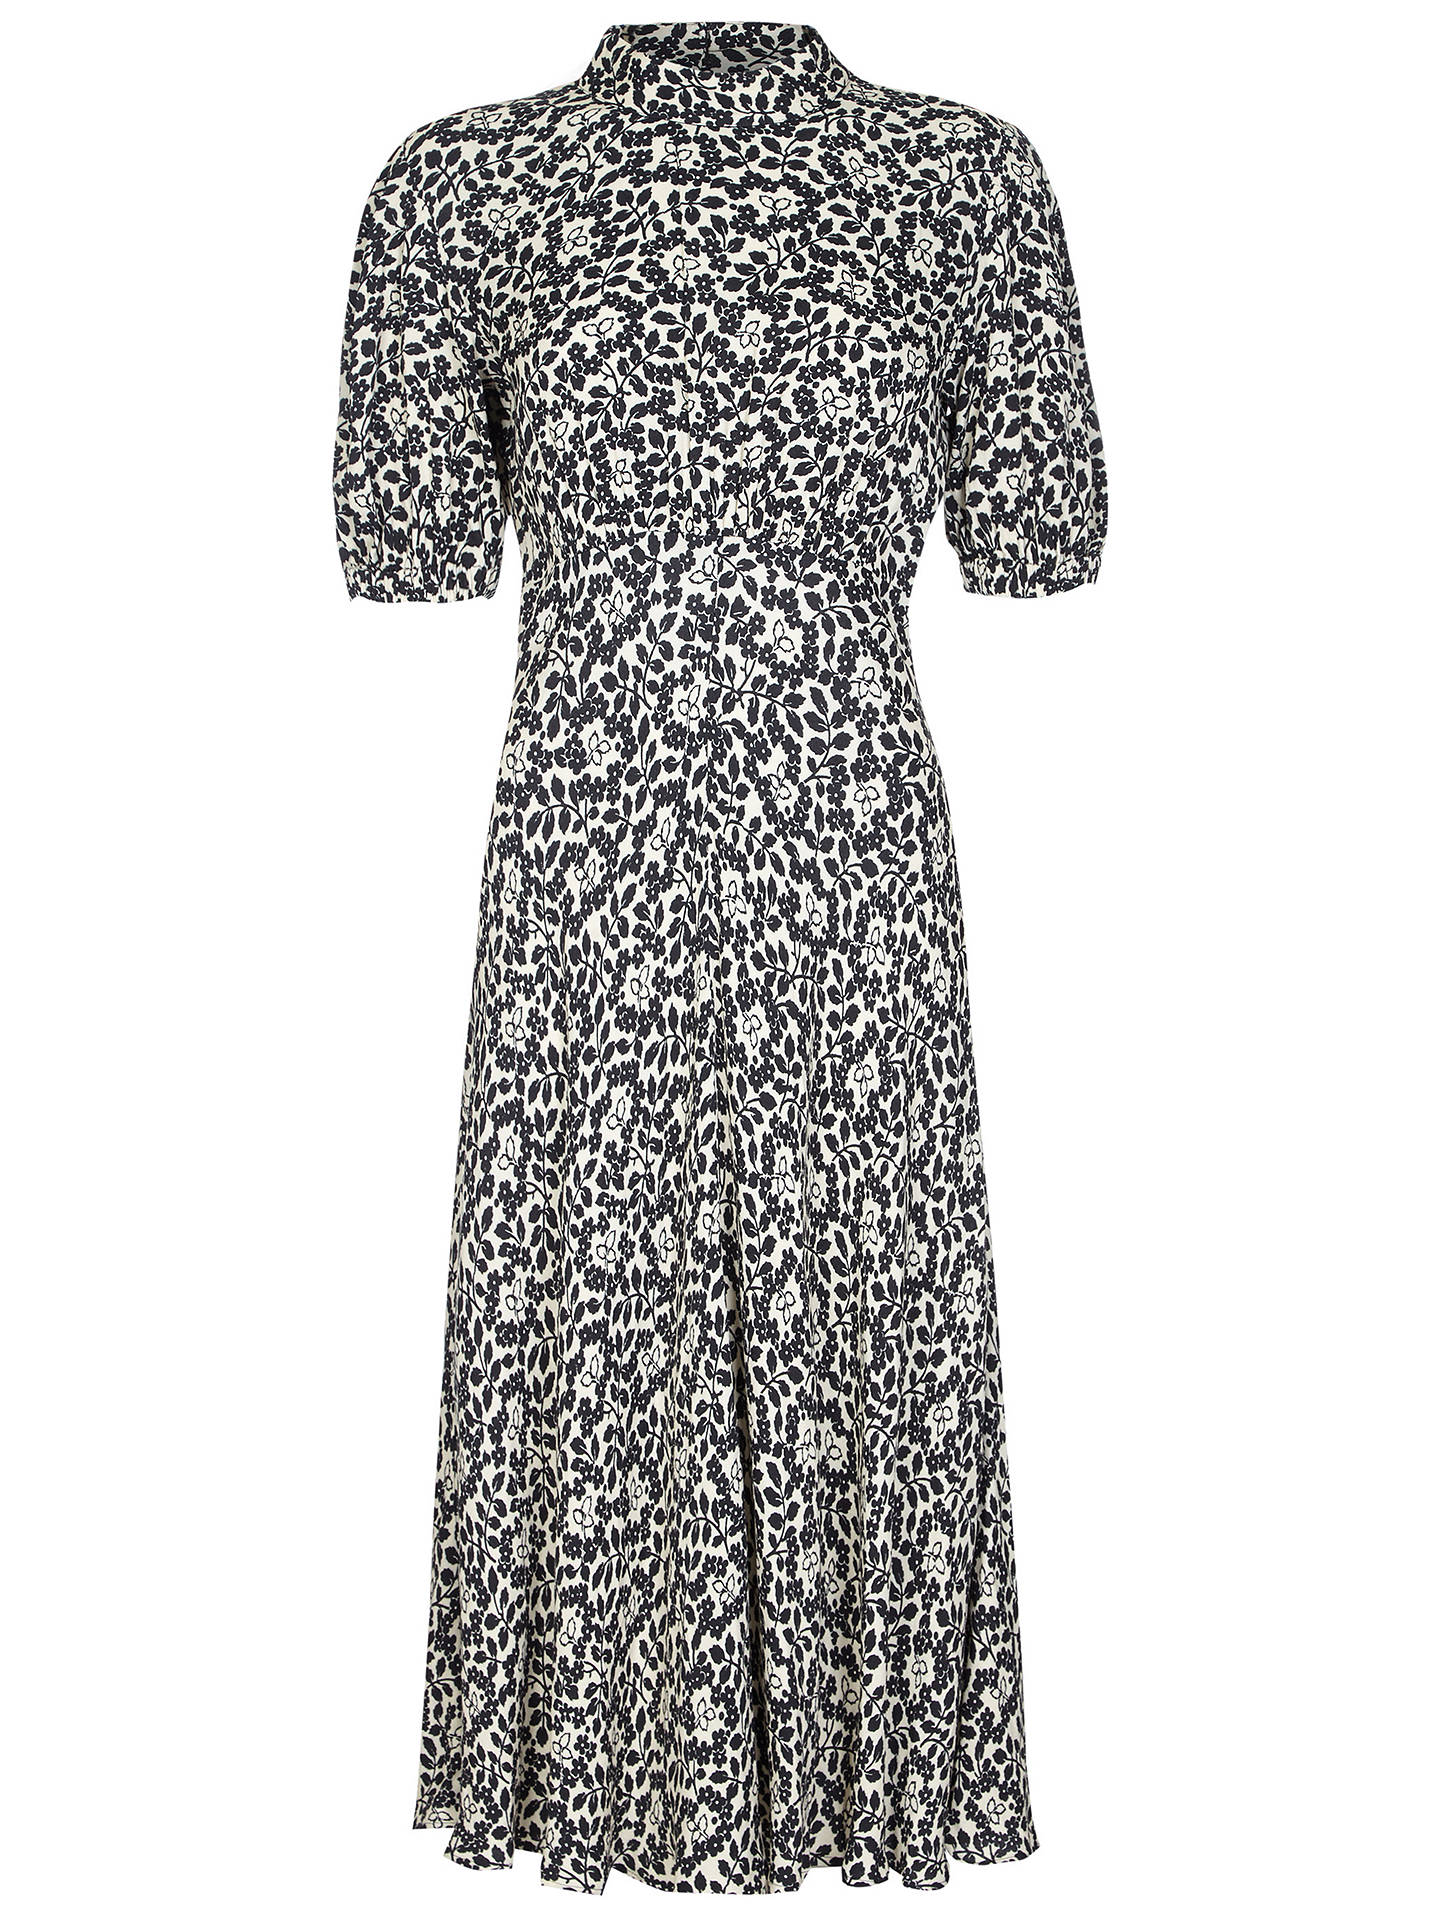 df25ed82cd3c8 ... Buy Ghost Luella Dress, Mini Helena Ditsy, XS Online at johnlewis.com  ...